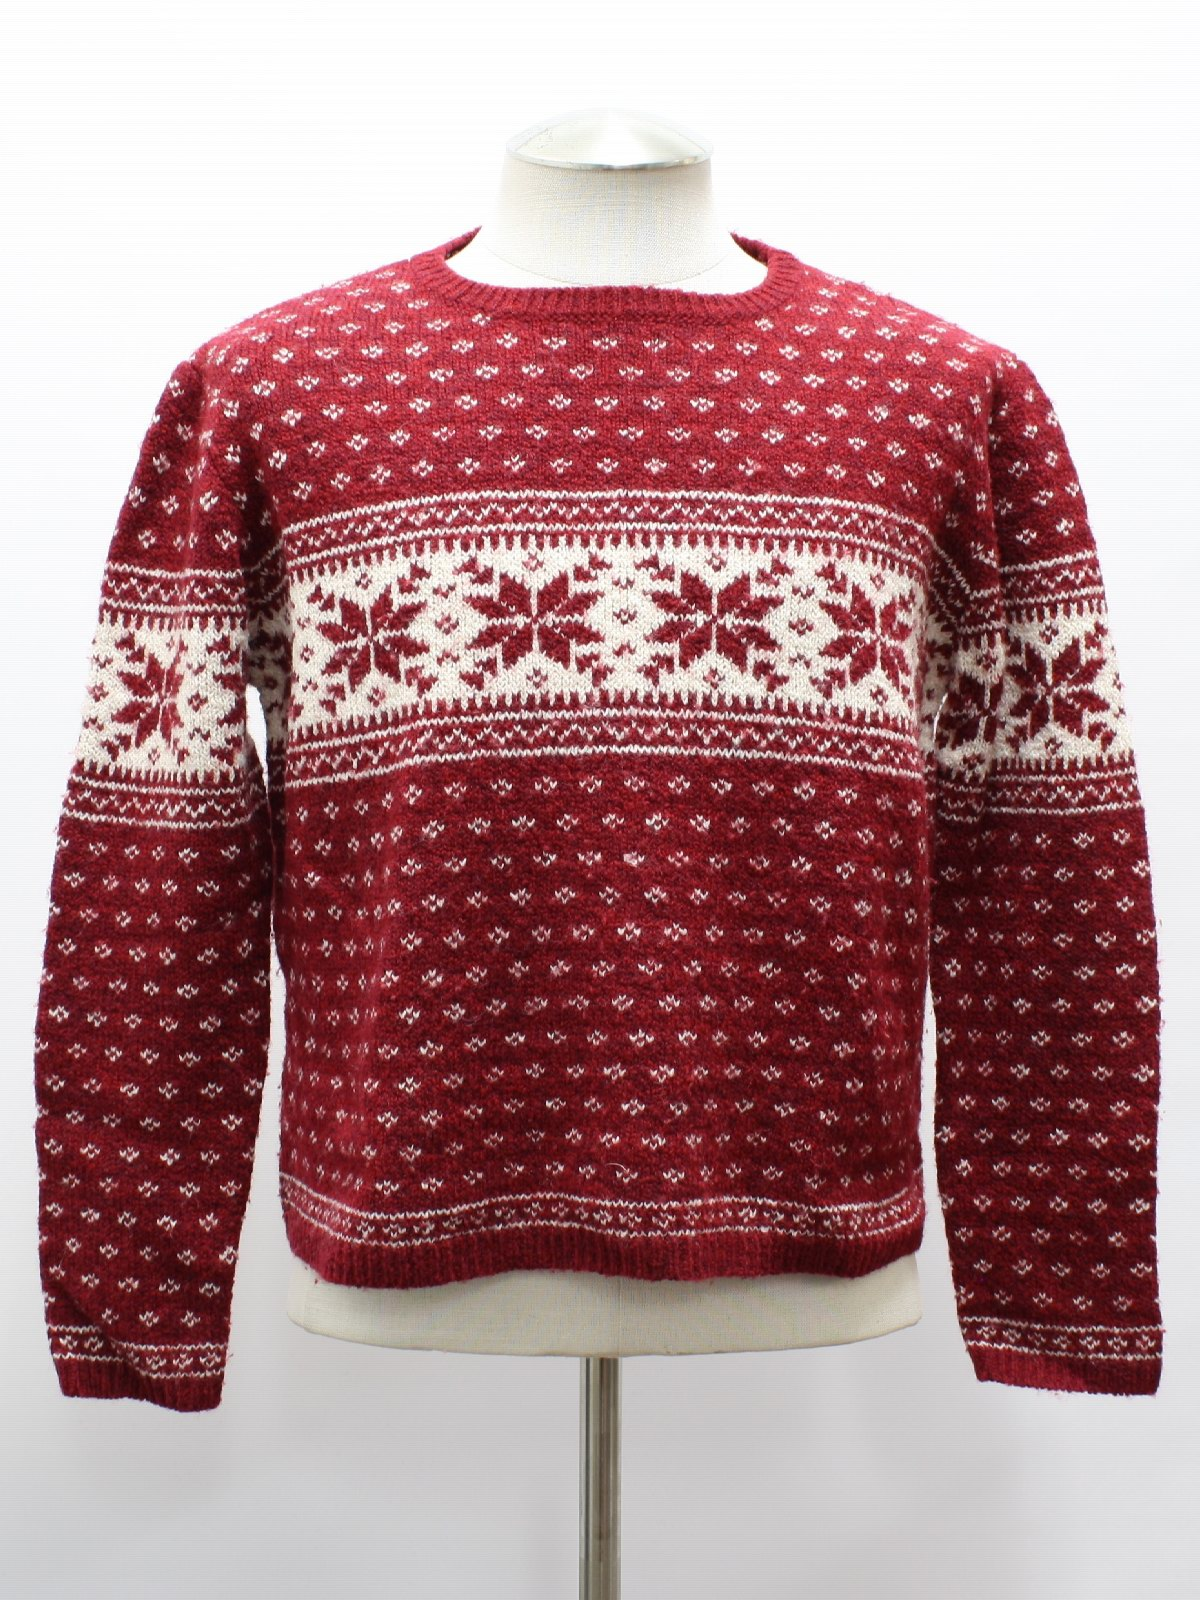 When it comes to men's Christmas sweaters, we've got it all, folks. It's a man's world and peers.ml is the easiest and fastest place to shop for the men of the world who are looking for the ultimate in men's ugly Christmas sweater fame. So be a man this Christmas and sport one of these super ugly sweaters for gentlemen!